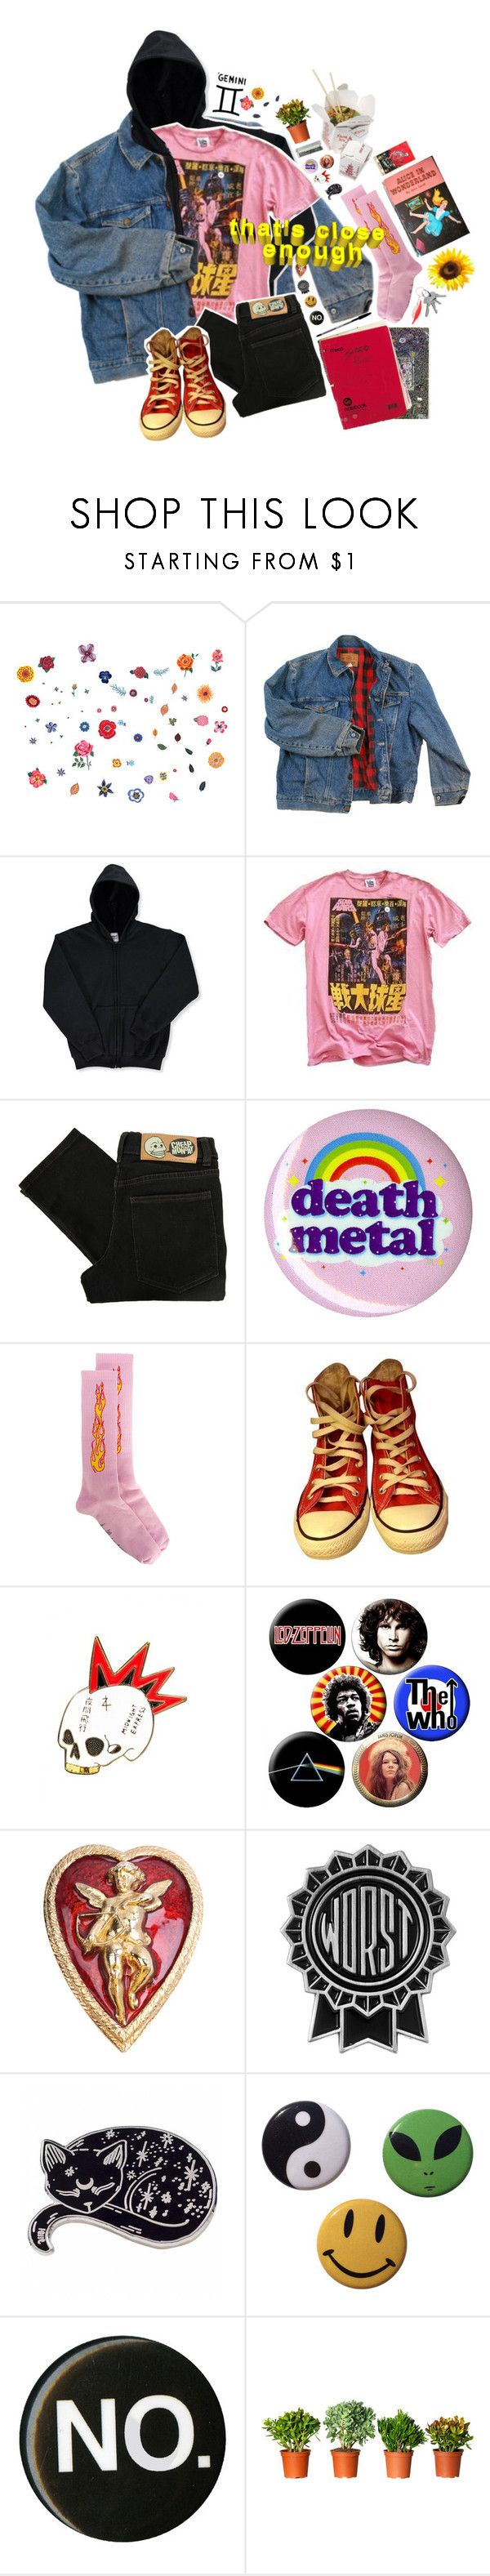 """""""GEMINI; Ascendant: Capricon / Sun sign: Cancer / Moon sign: Libra"""" by silence-d ❤ liked on Polyvore featuring DOMESTIC, Wrangler, Junk Food Clothing, Cheap Monday, Hot Topic, Palm Angels, Converse, Hyein Seo, Susan Caplan Vintage and zodiac"""